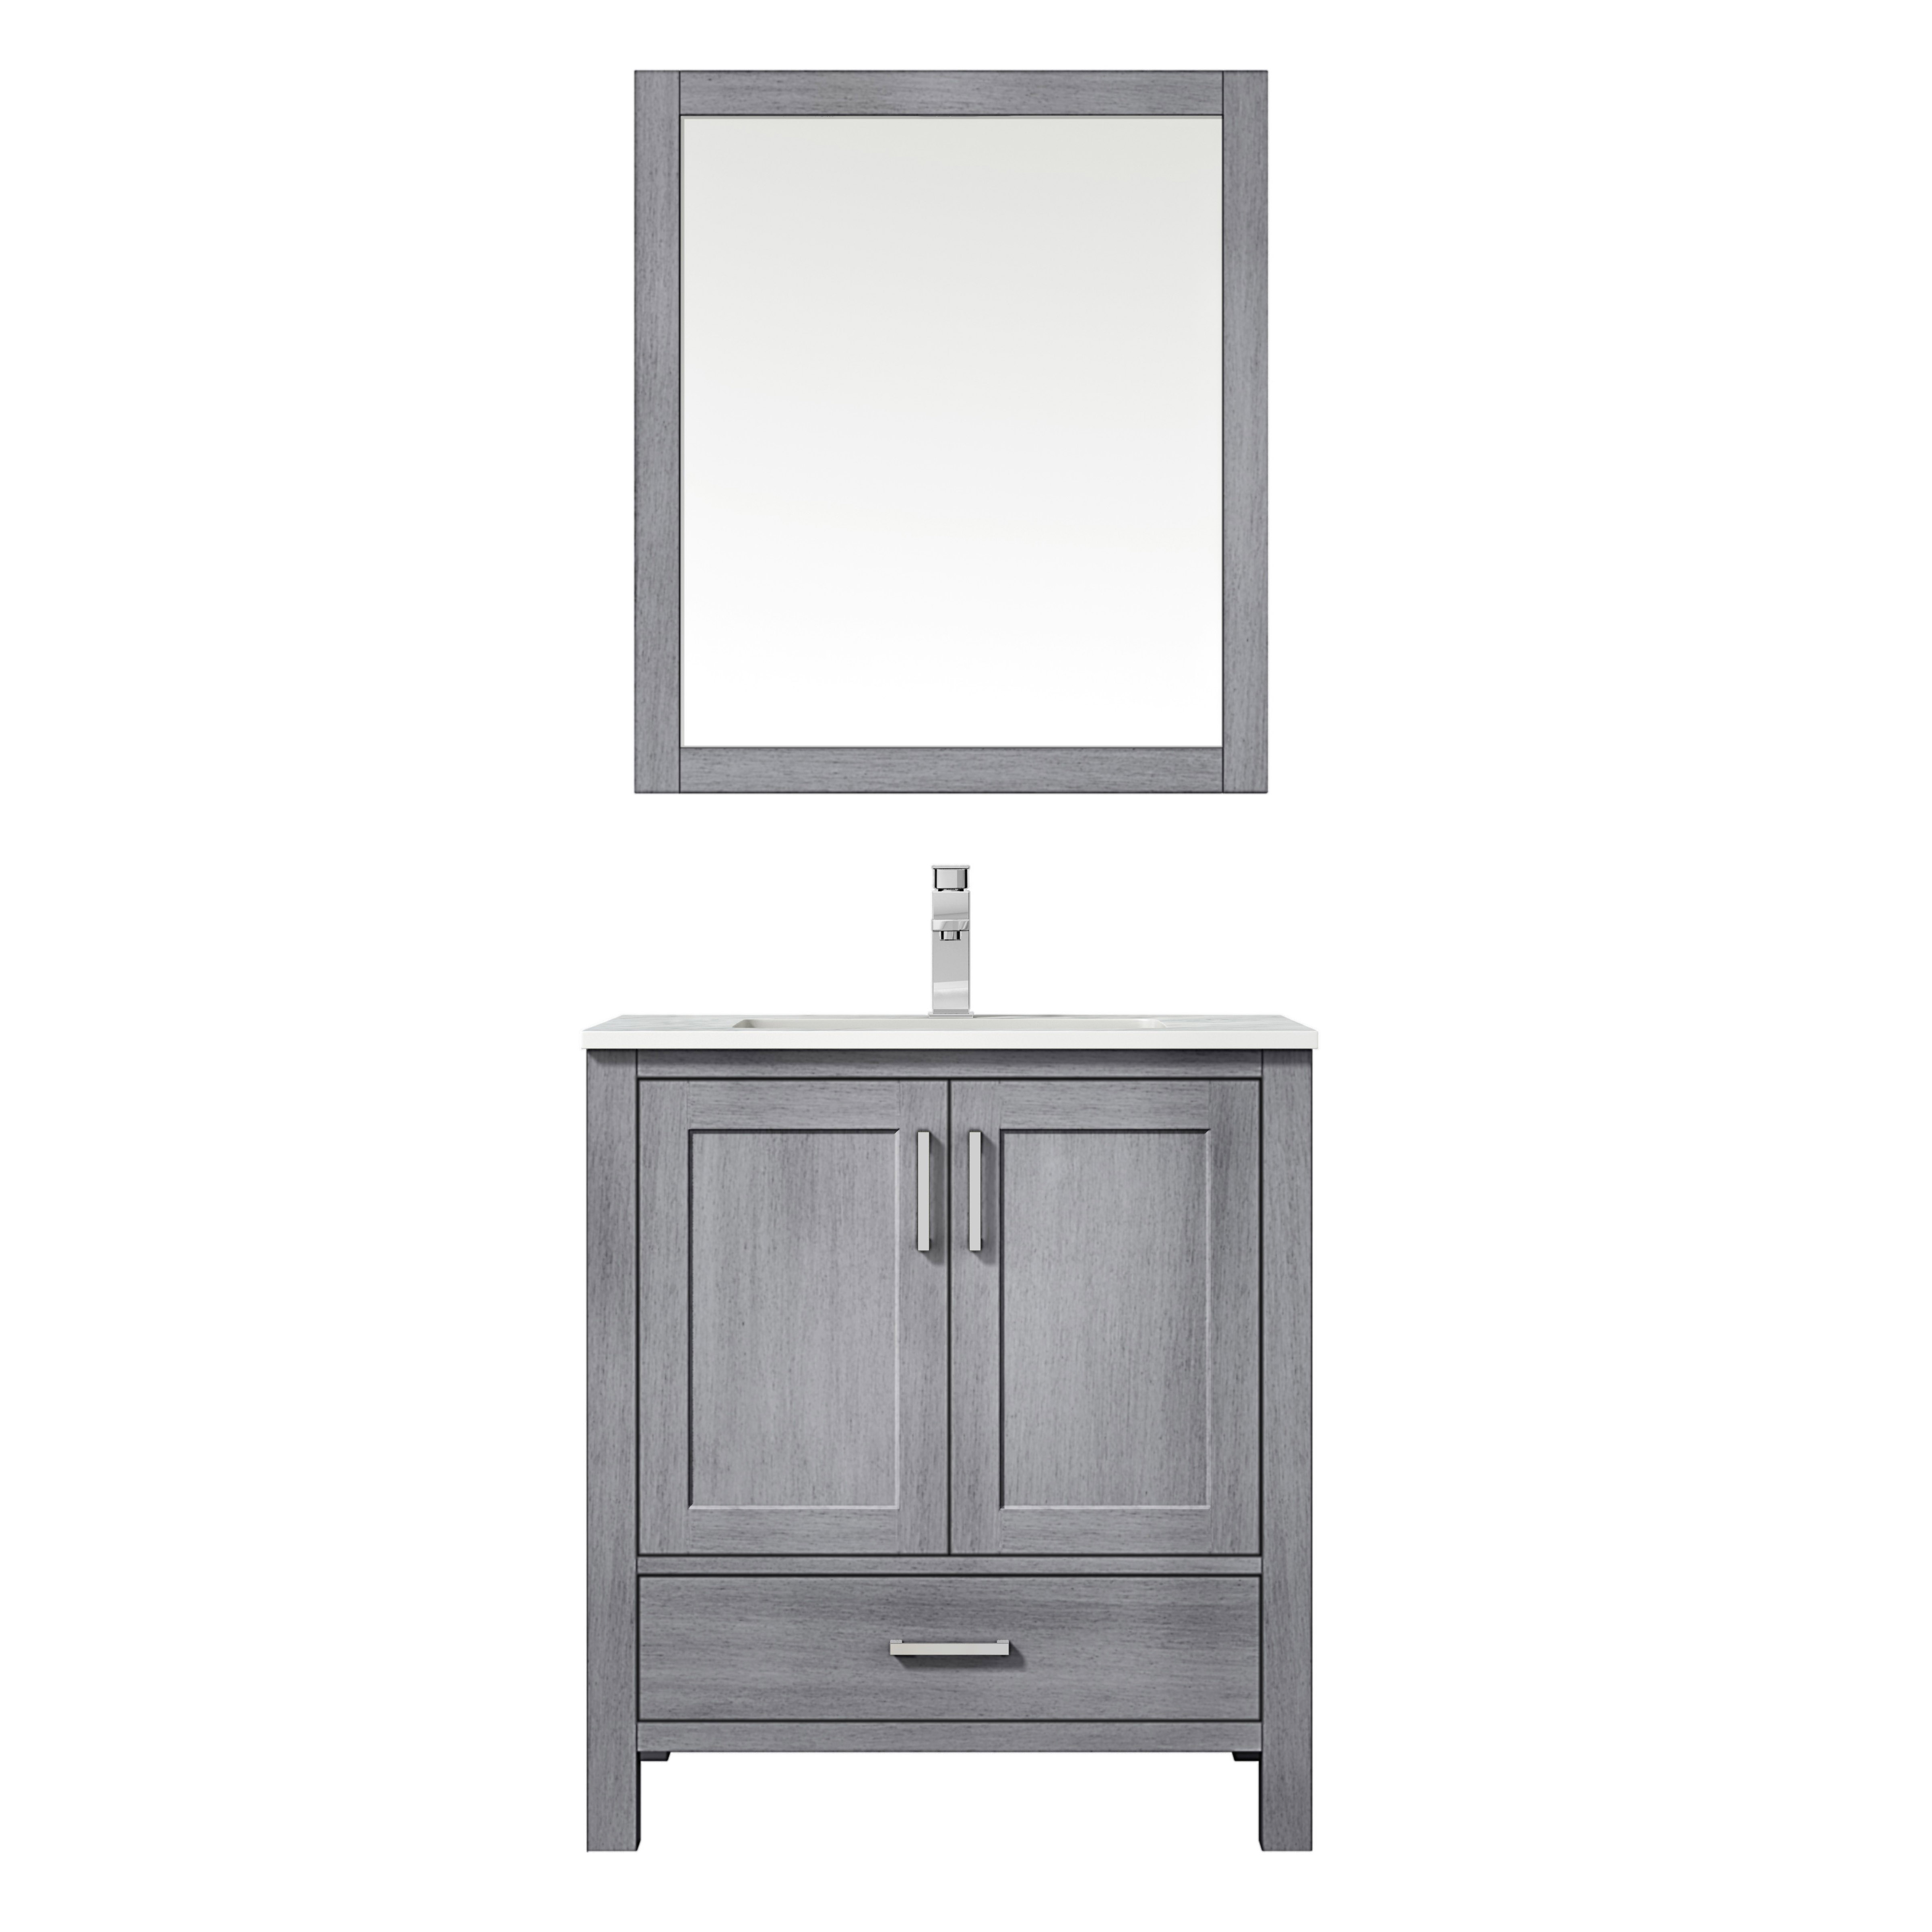 "30"" Distressed Grey Vanity Cabinet Only with Countertop and Mirror Options"